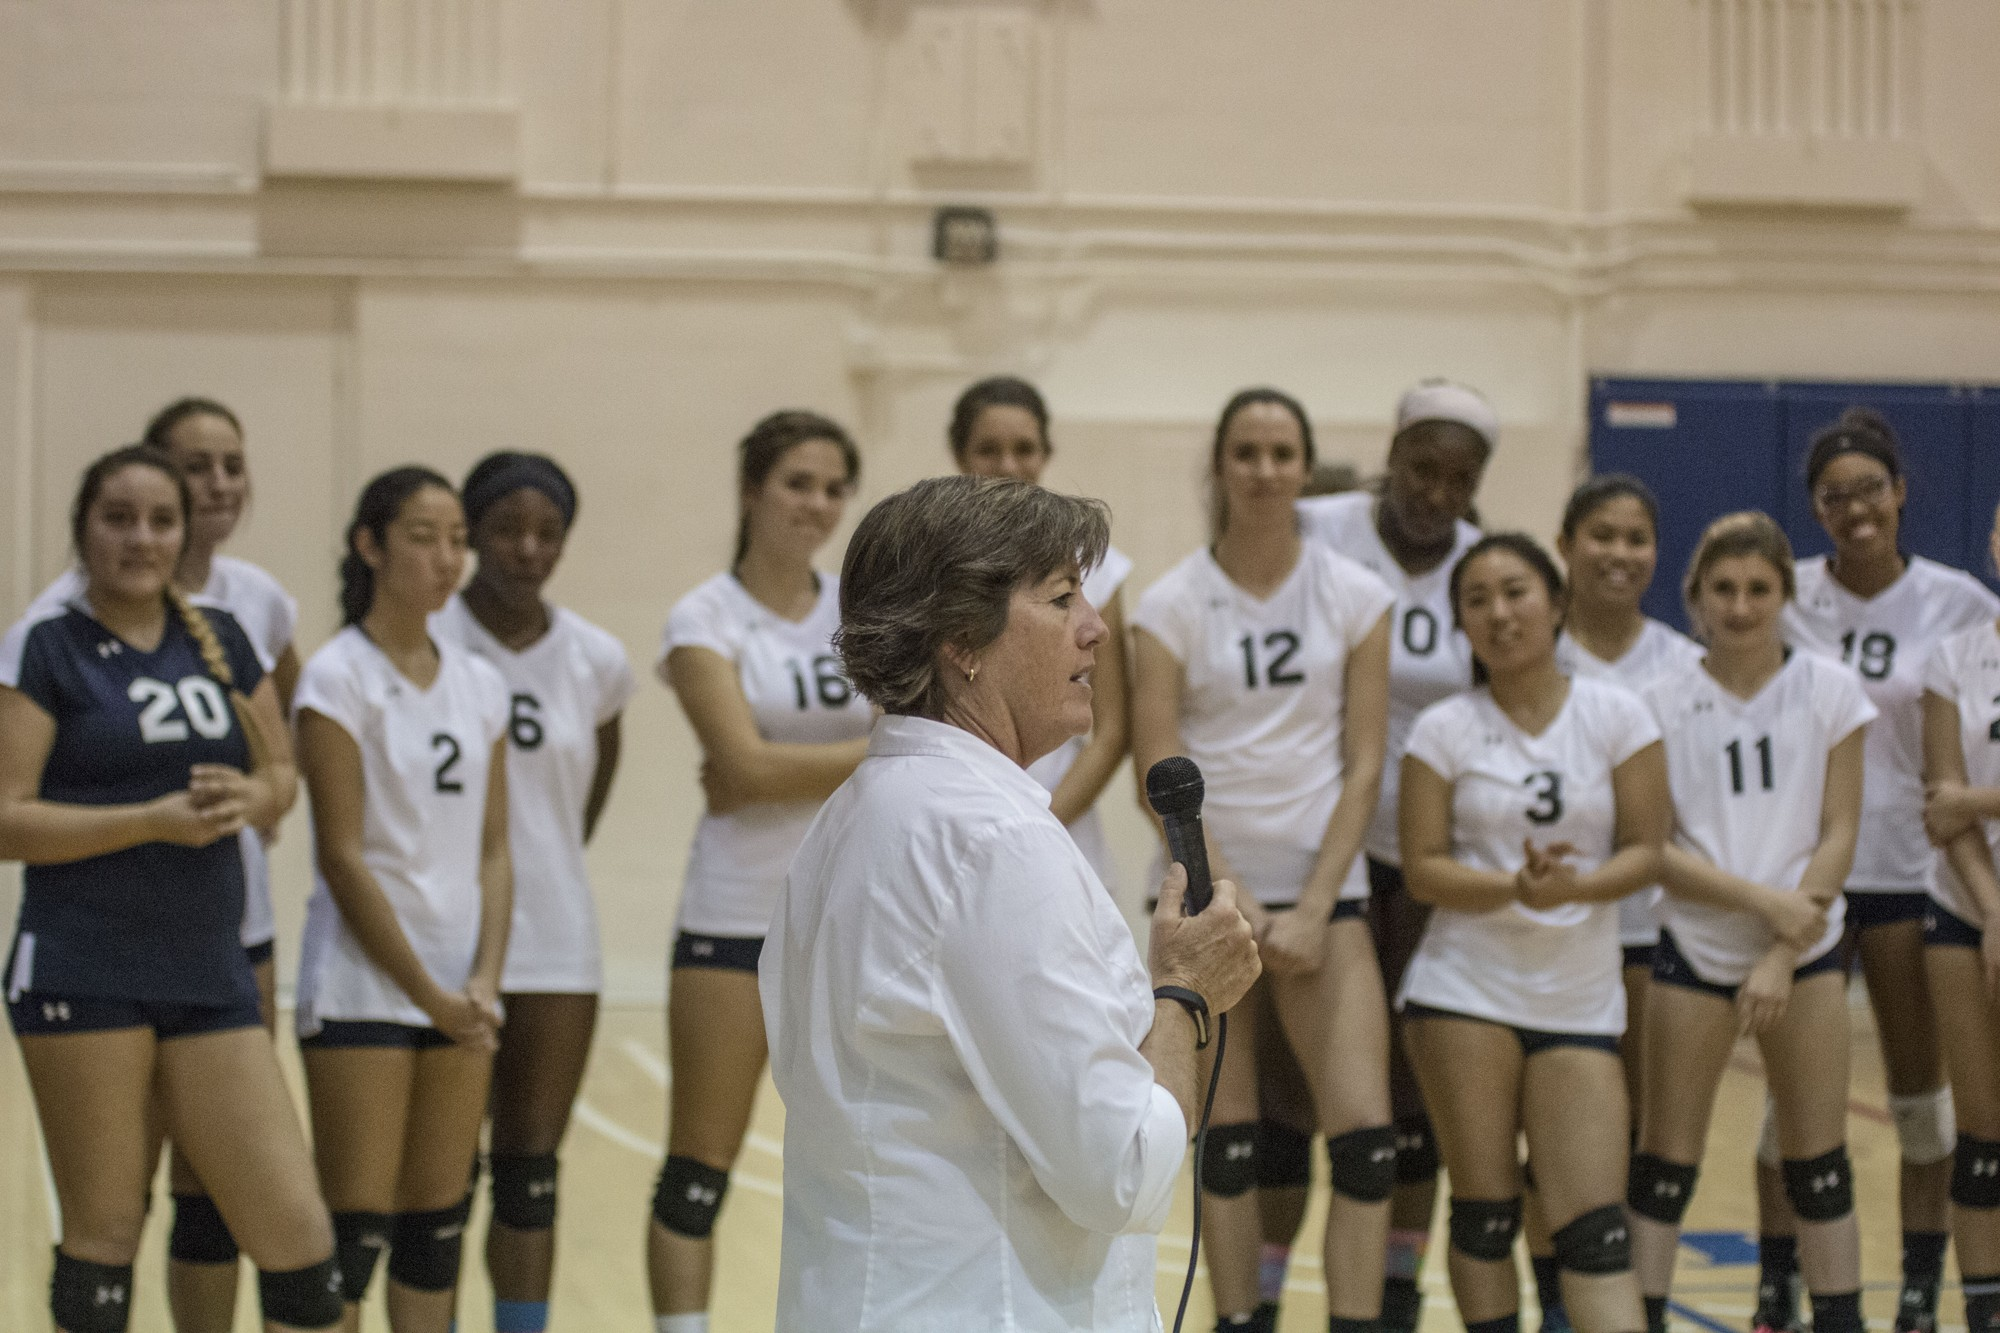 El Camino women's volleyball team pummels L.A. Harbor College in head coach's final regular-season home game